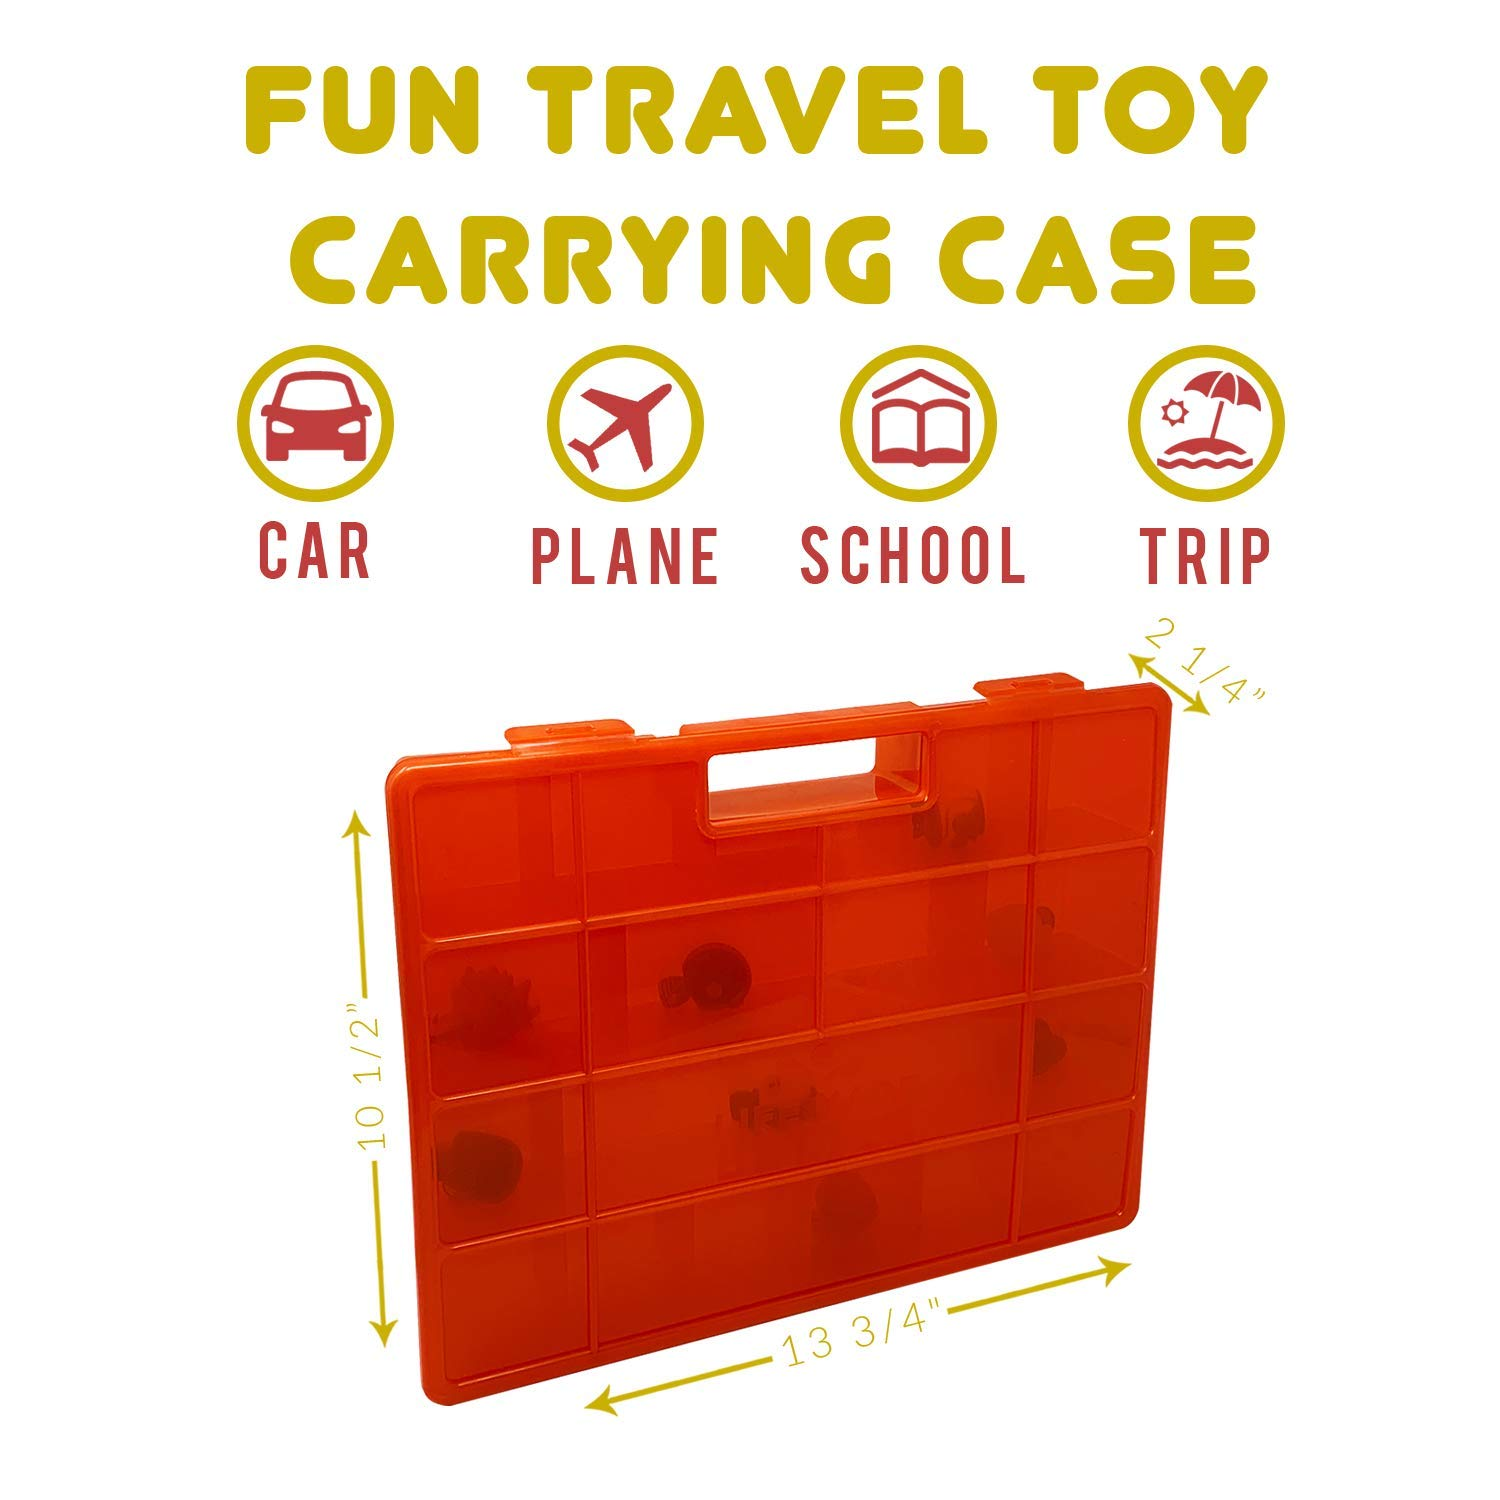 Life Made Better Playset Organization /& Sorting Accessory Created by LMB Compatible with Splashlings Long-Lasting Plastic Toy Storage Red Durable